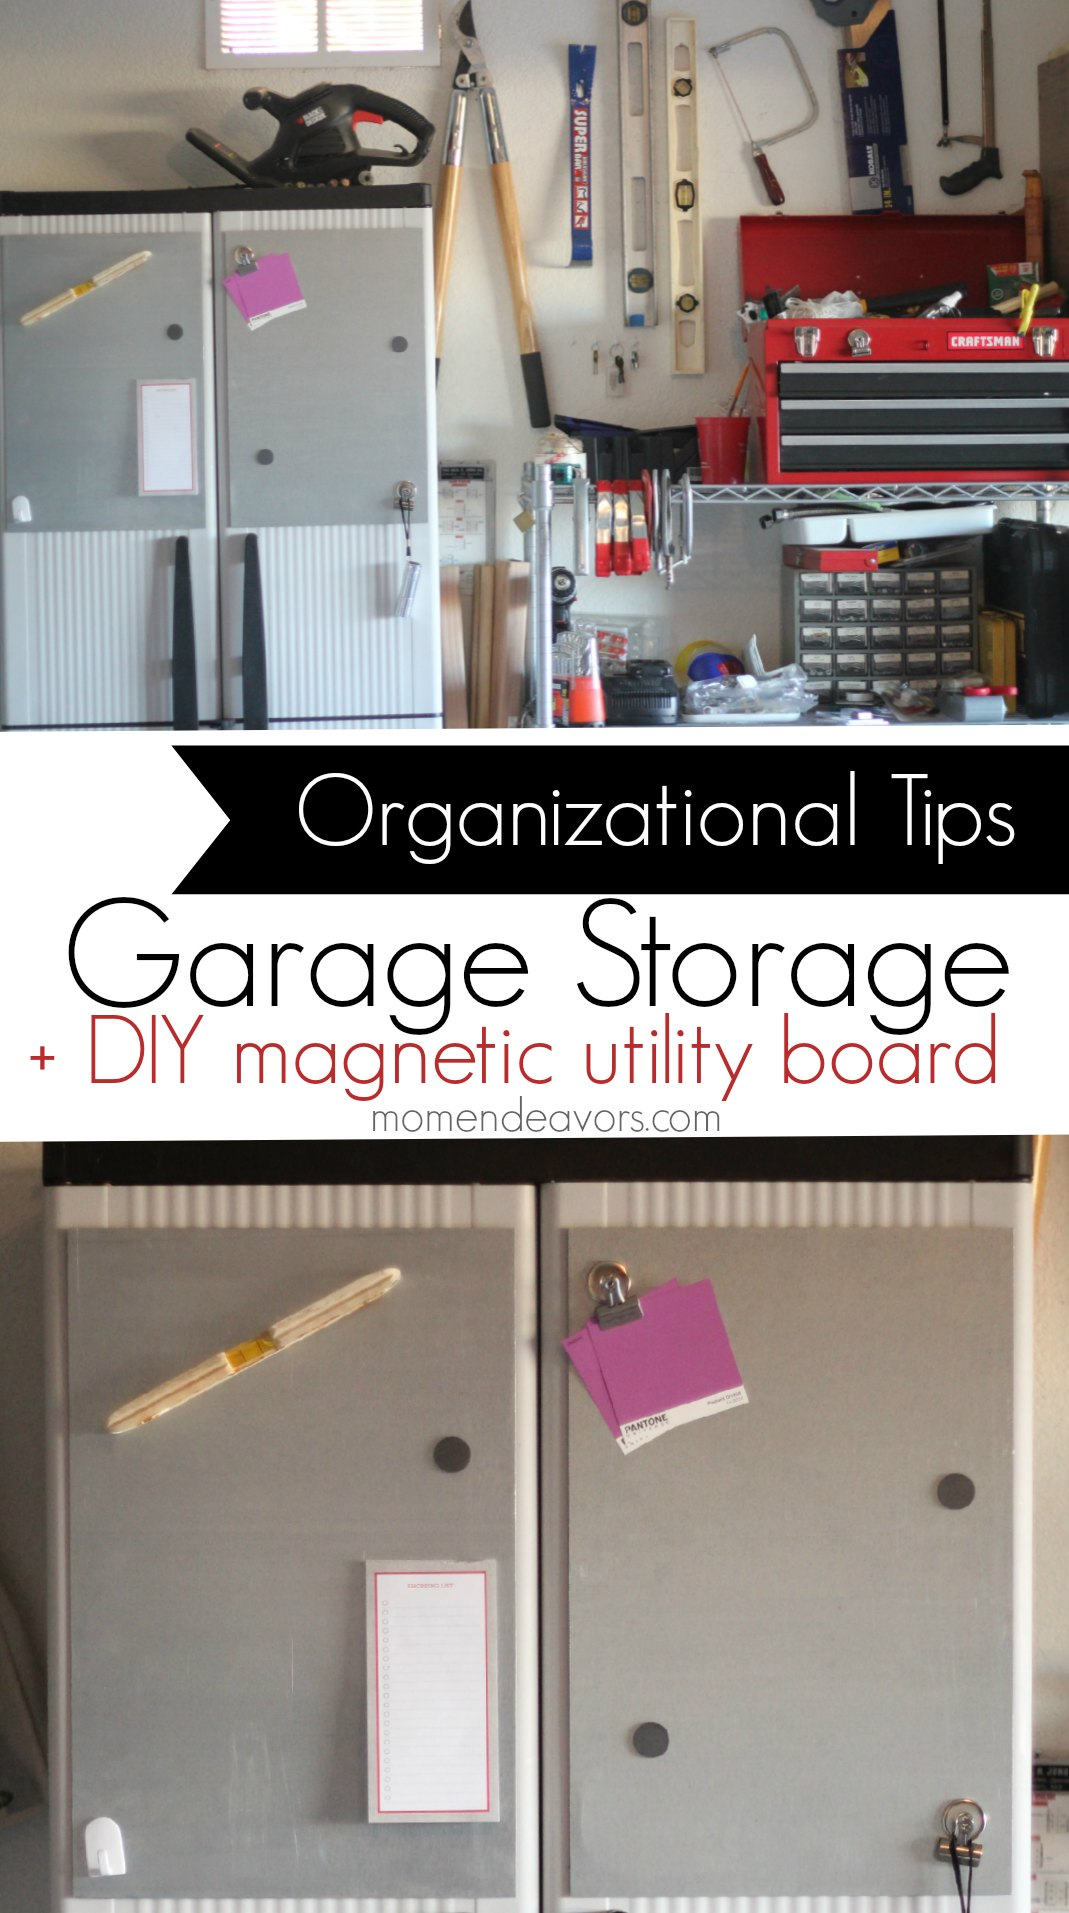 Home Organization: Garage Storage Ideas + DIY Magnetic Utility Board